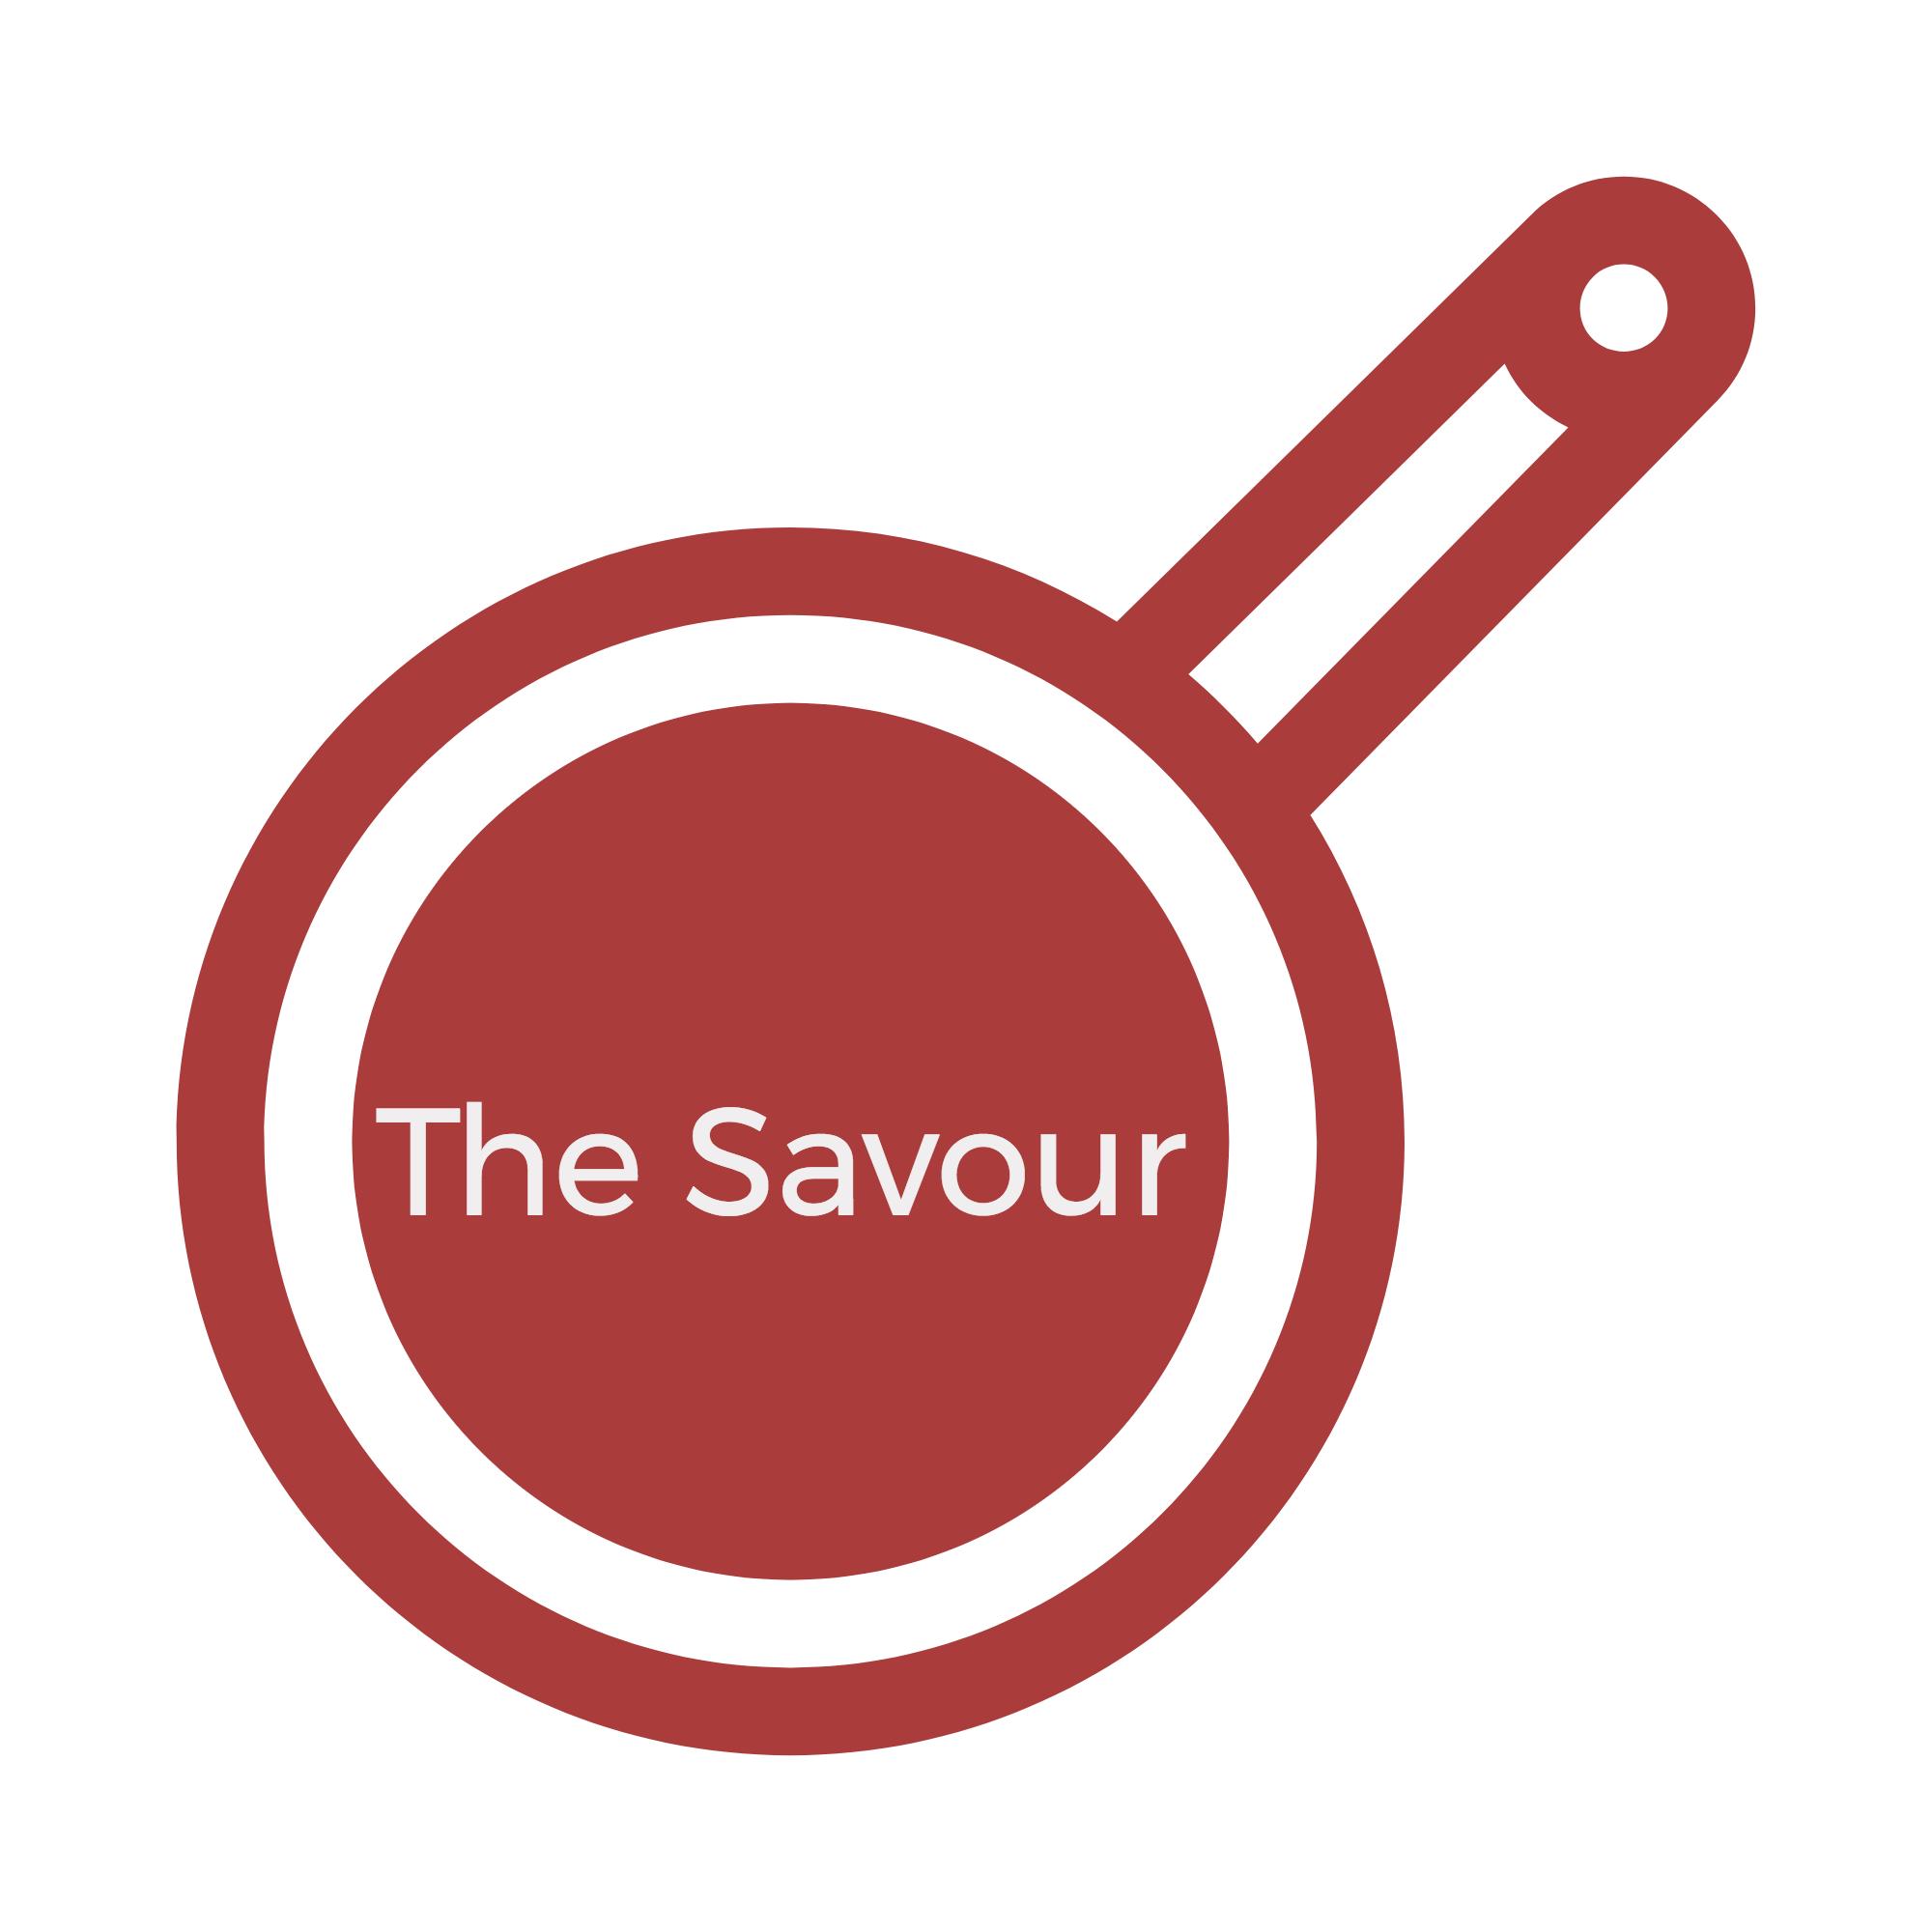 The Savour-logo.png